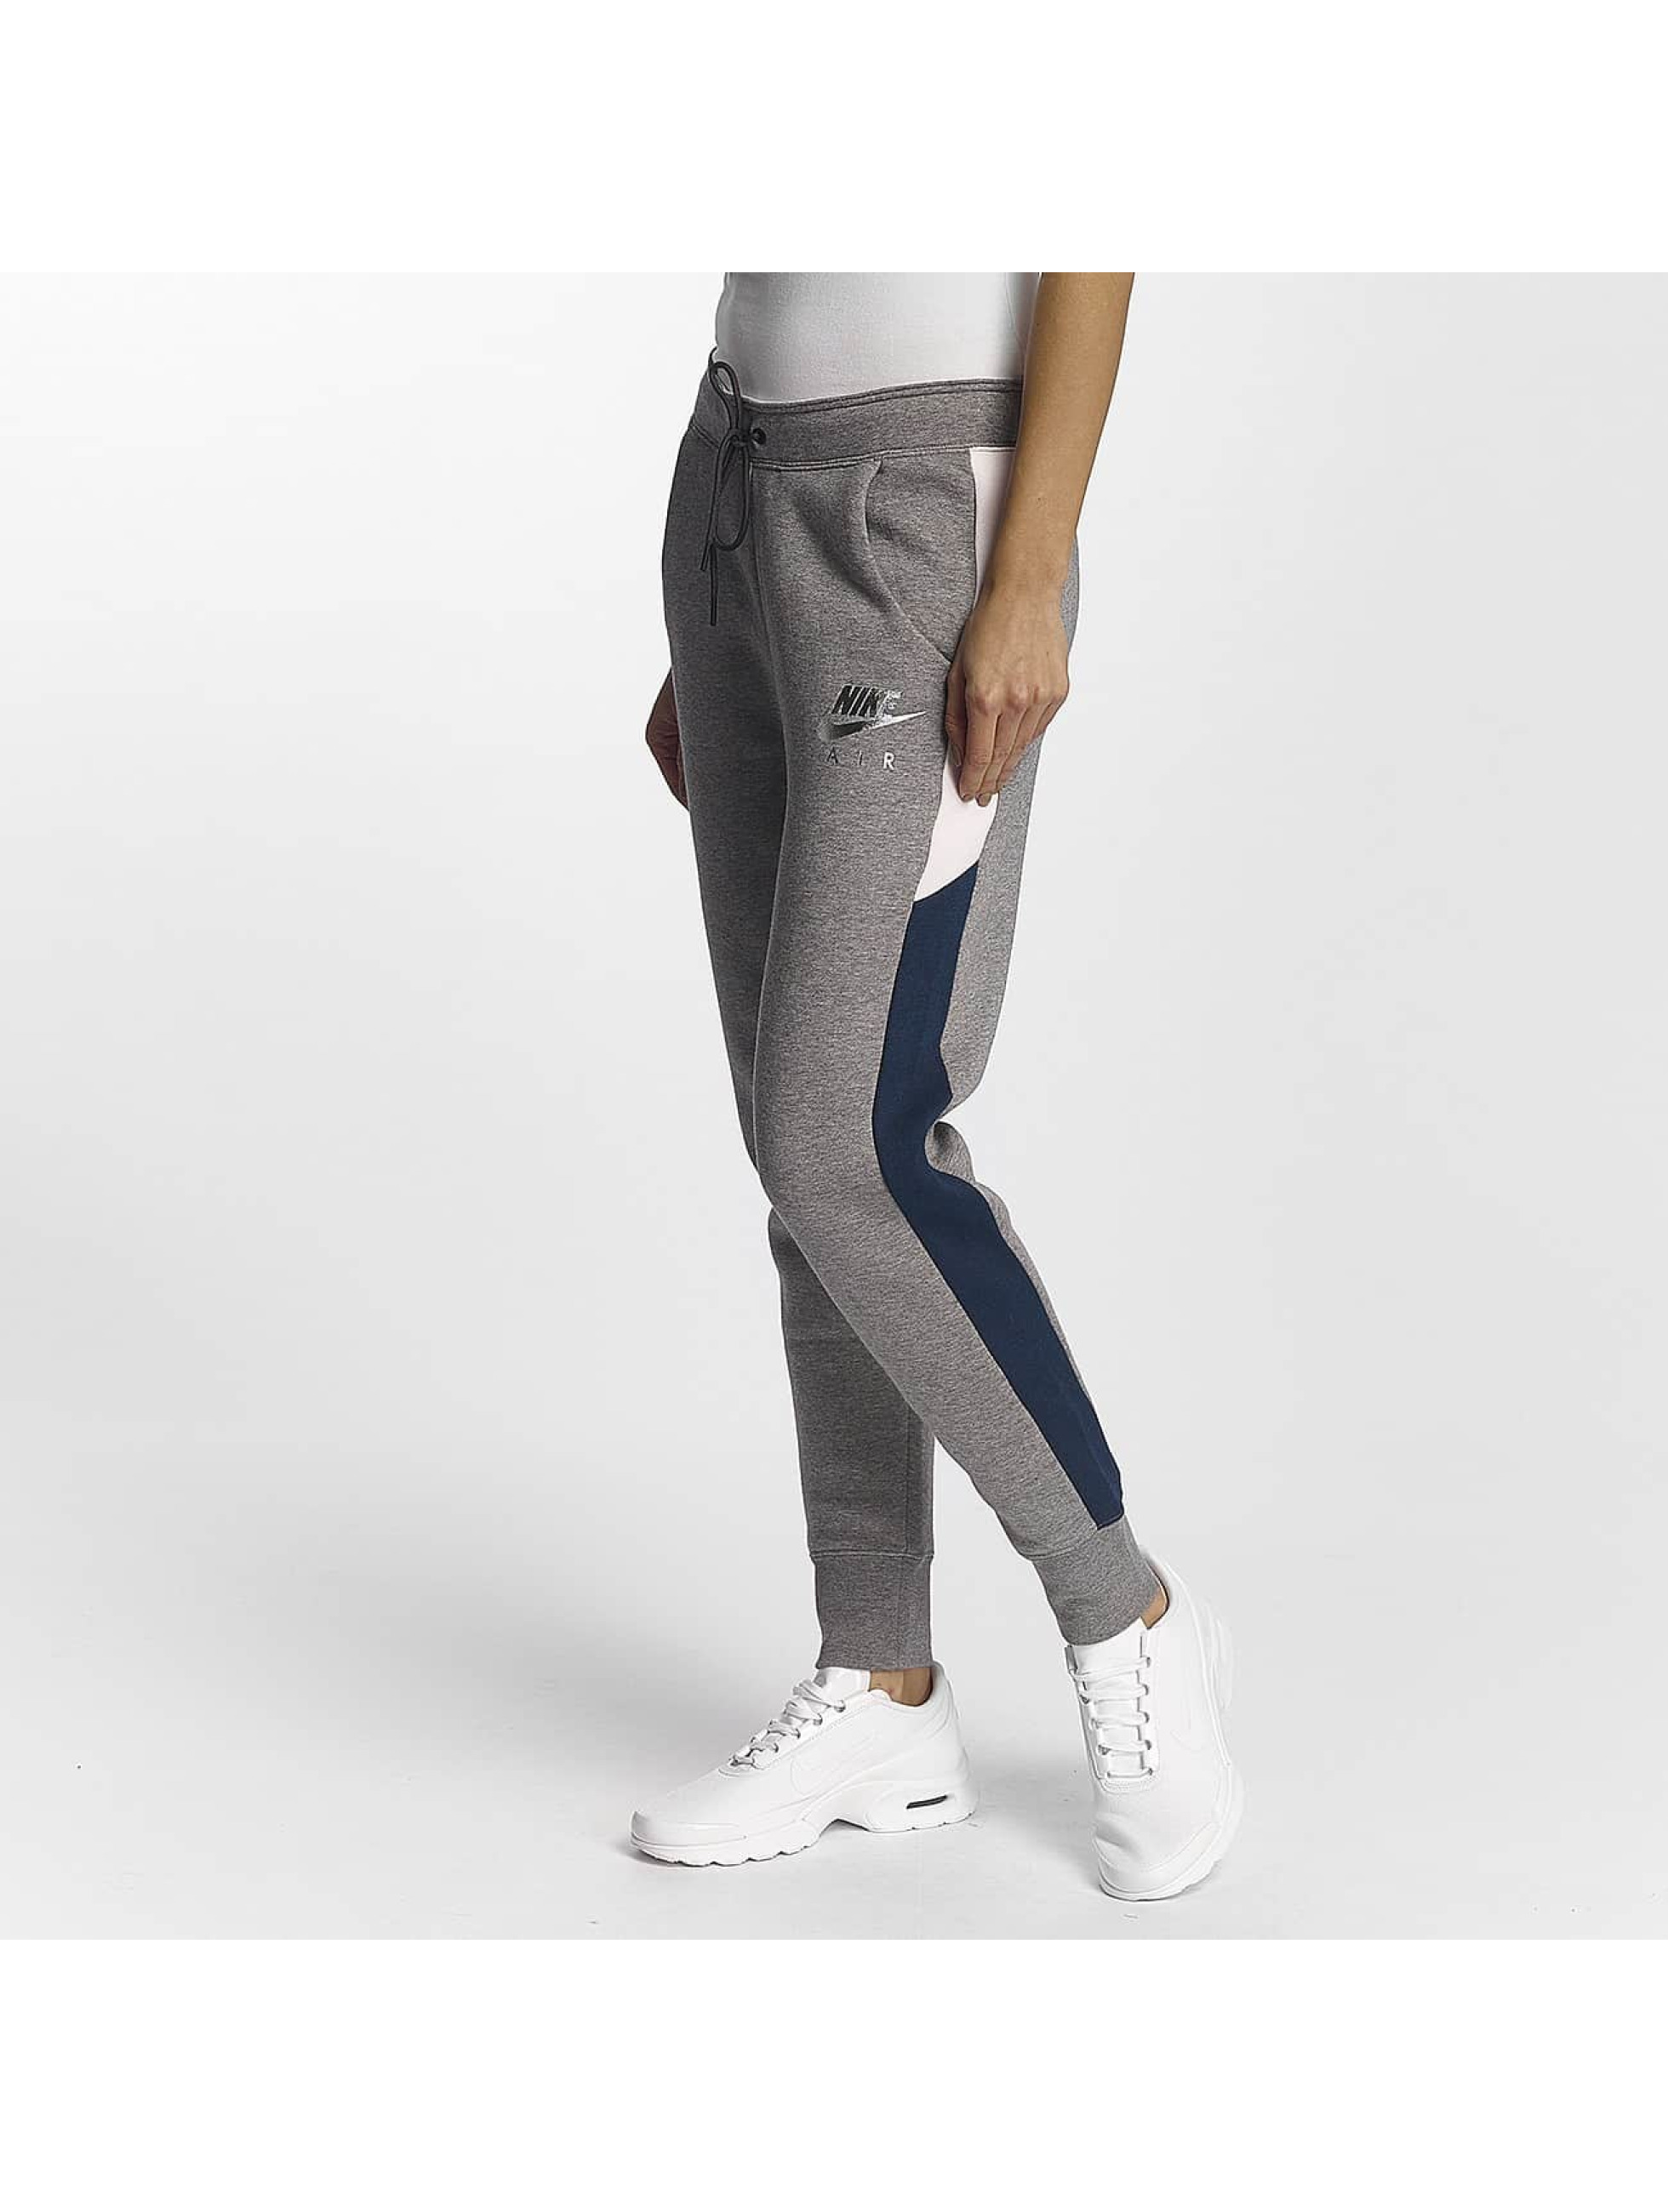 Nike Fleece Kinder Nike Damen Jogginghose Nsw Rally Air In Grau 364450